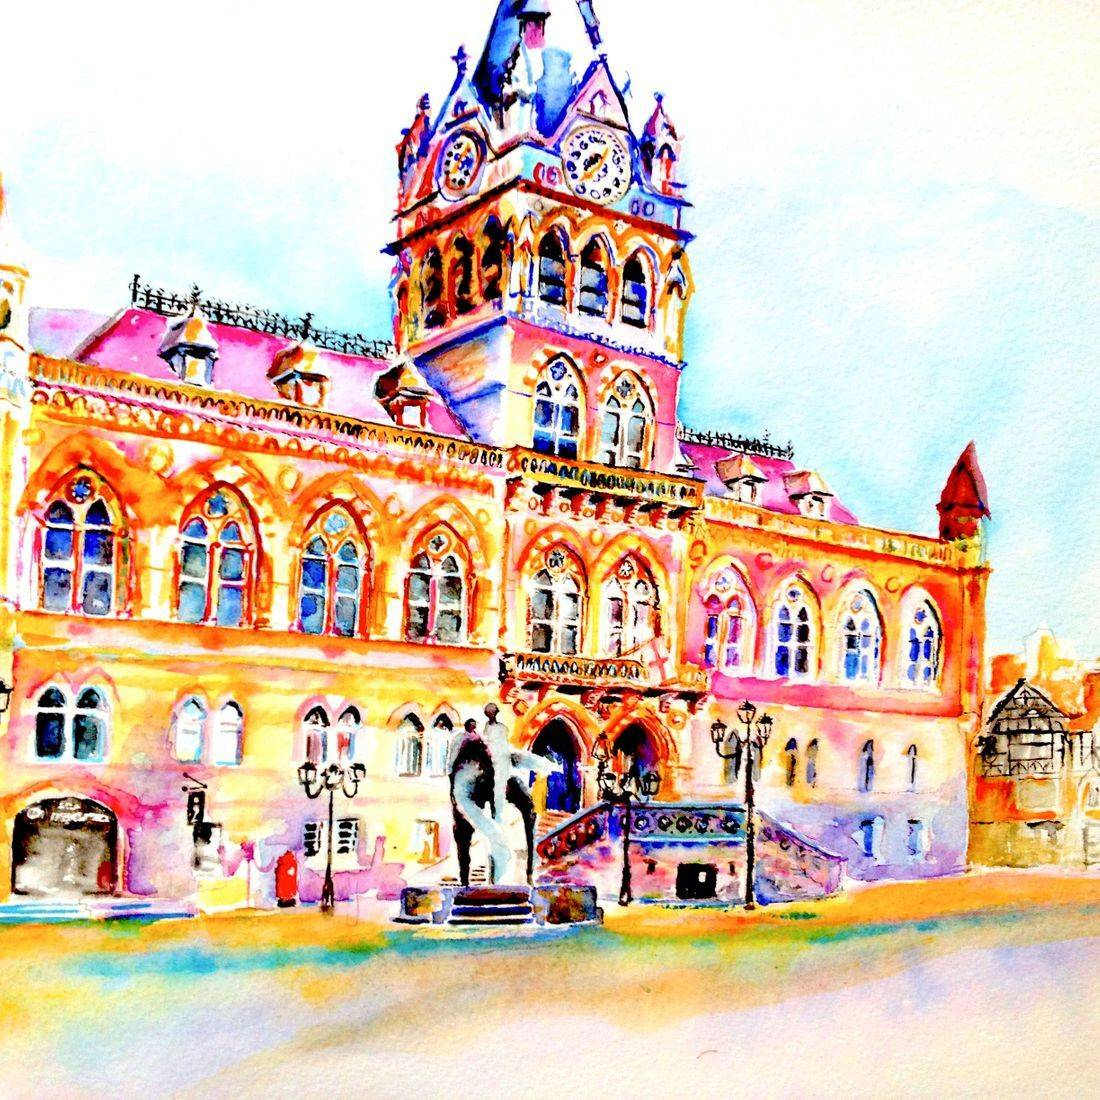 Town Hall in Chester, Cheshire by Mary Saifelden